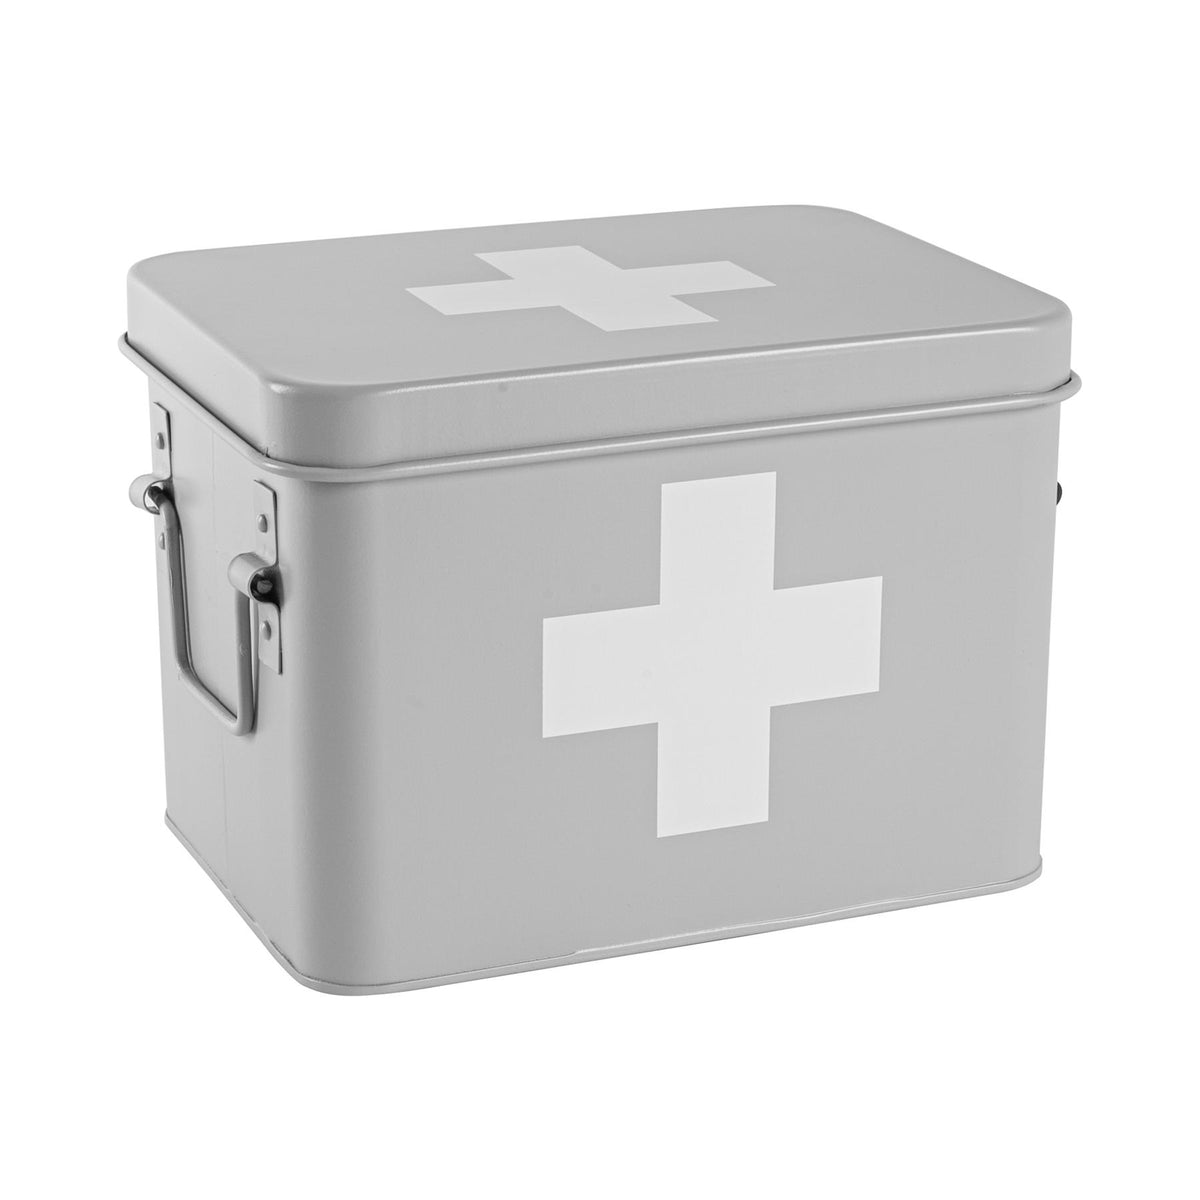 Harbour Housewares Vintage First Aid Storage Canister - Grey